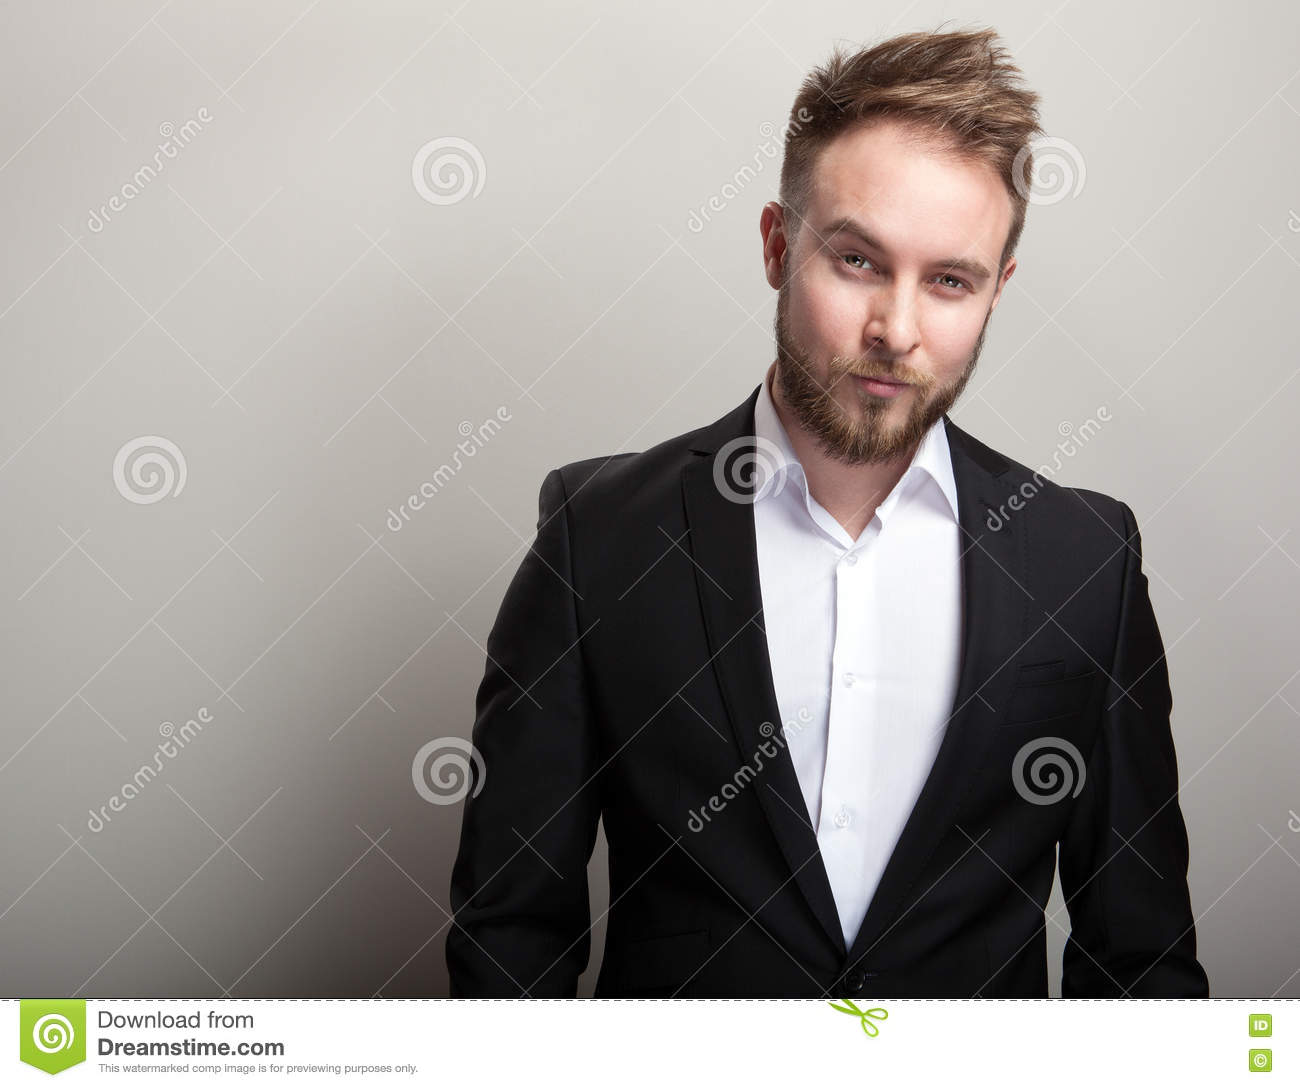 Elegant young handsome bearded man in classic black costume & white shirt